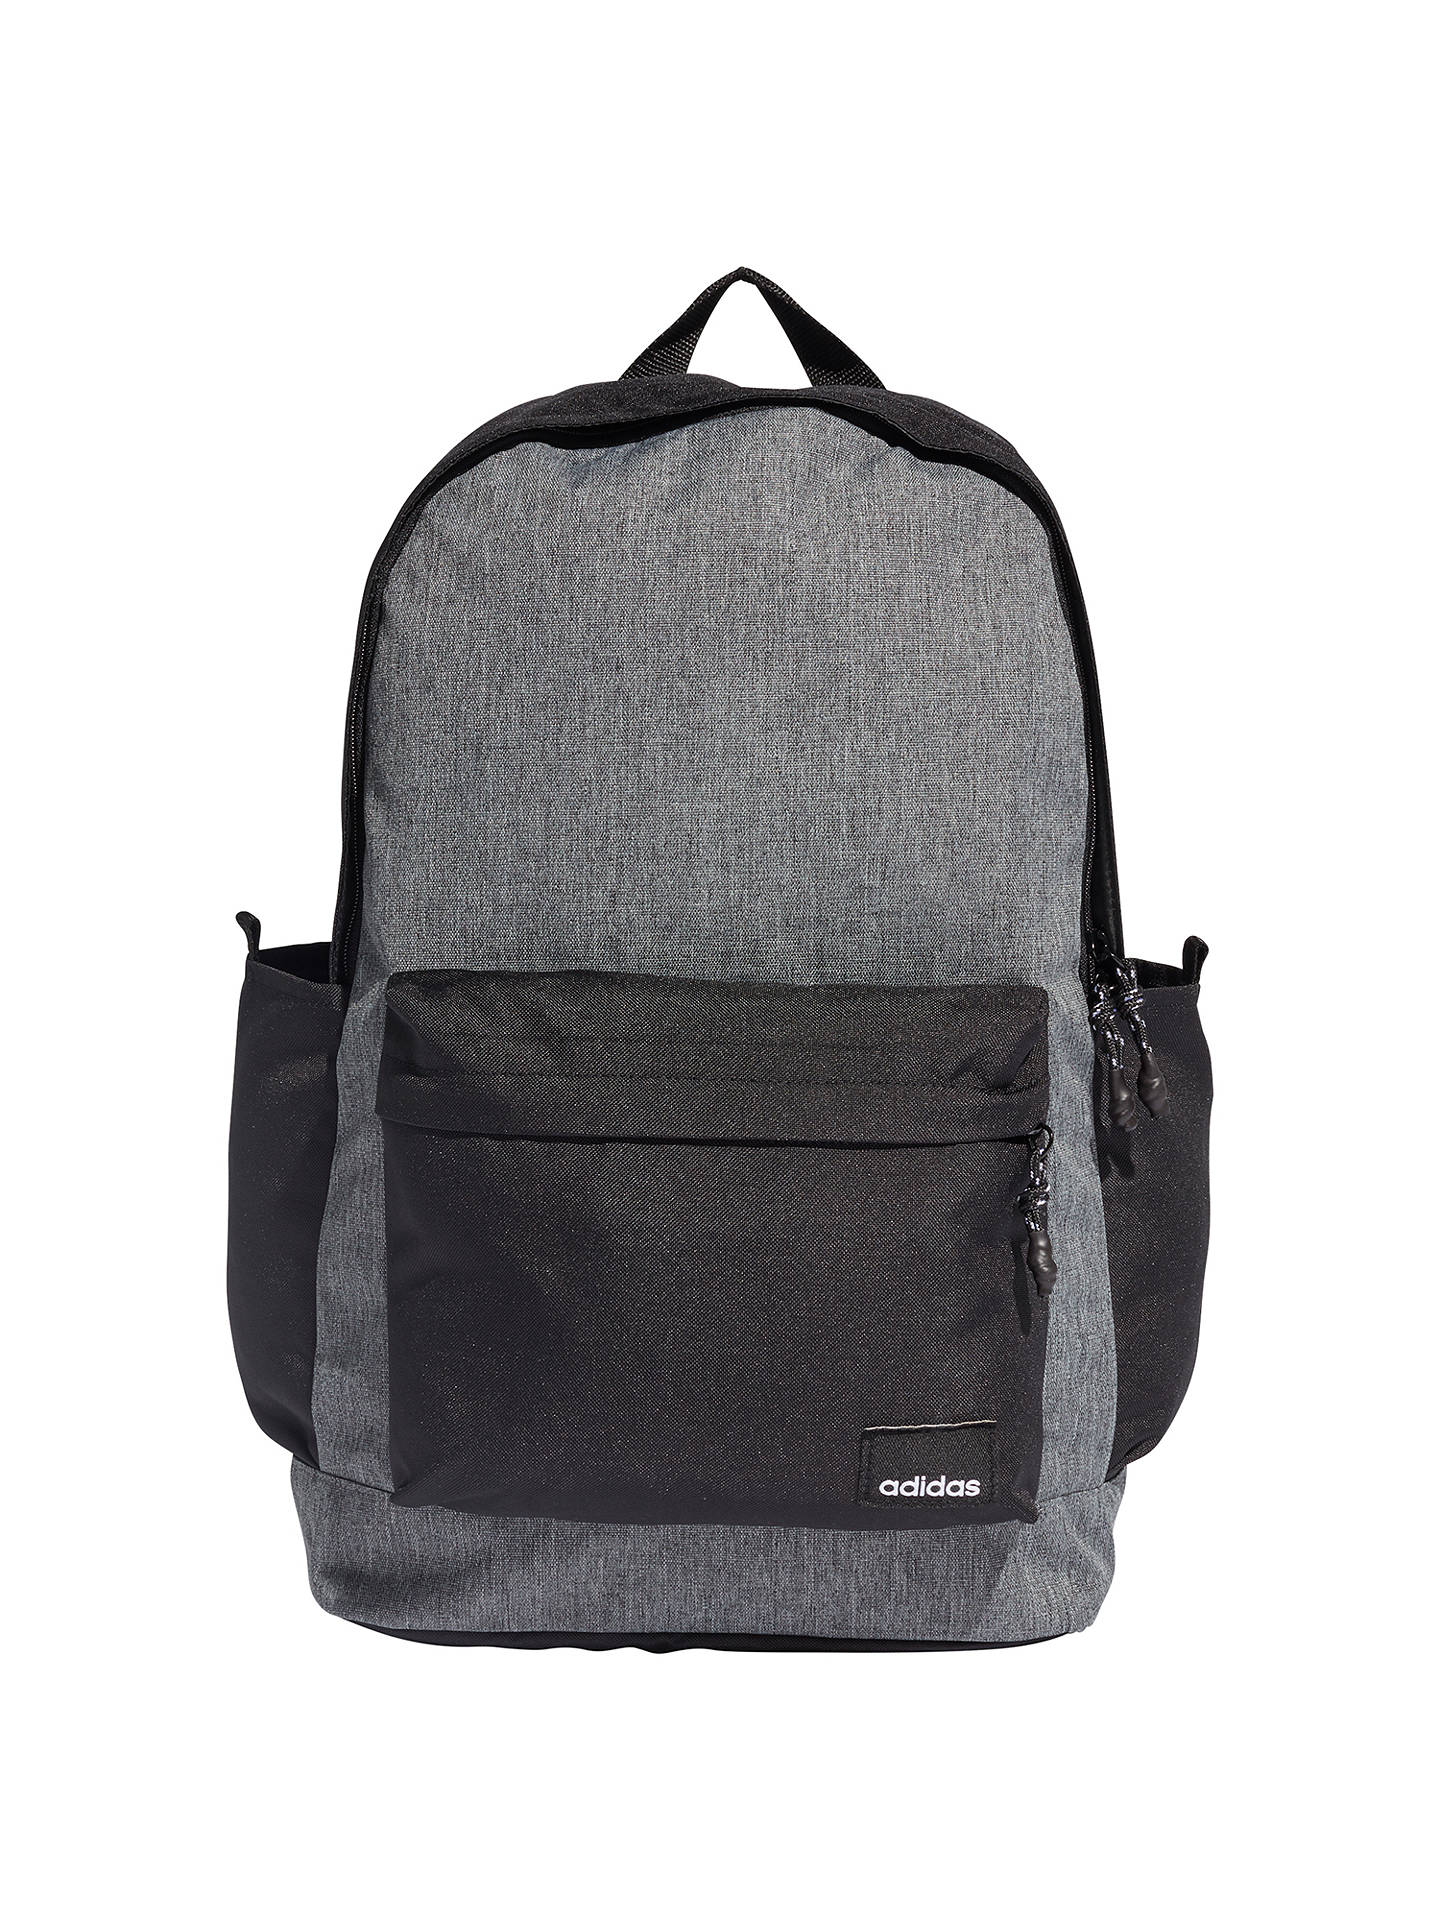 Buyadidas Classic Backpack, Black/Grey Online at johnlewis.com